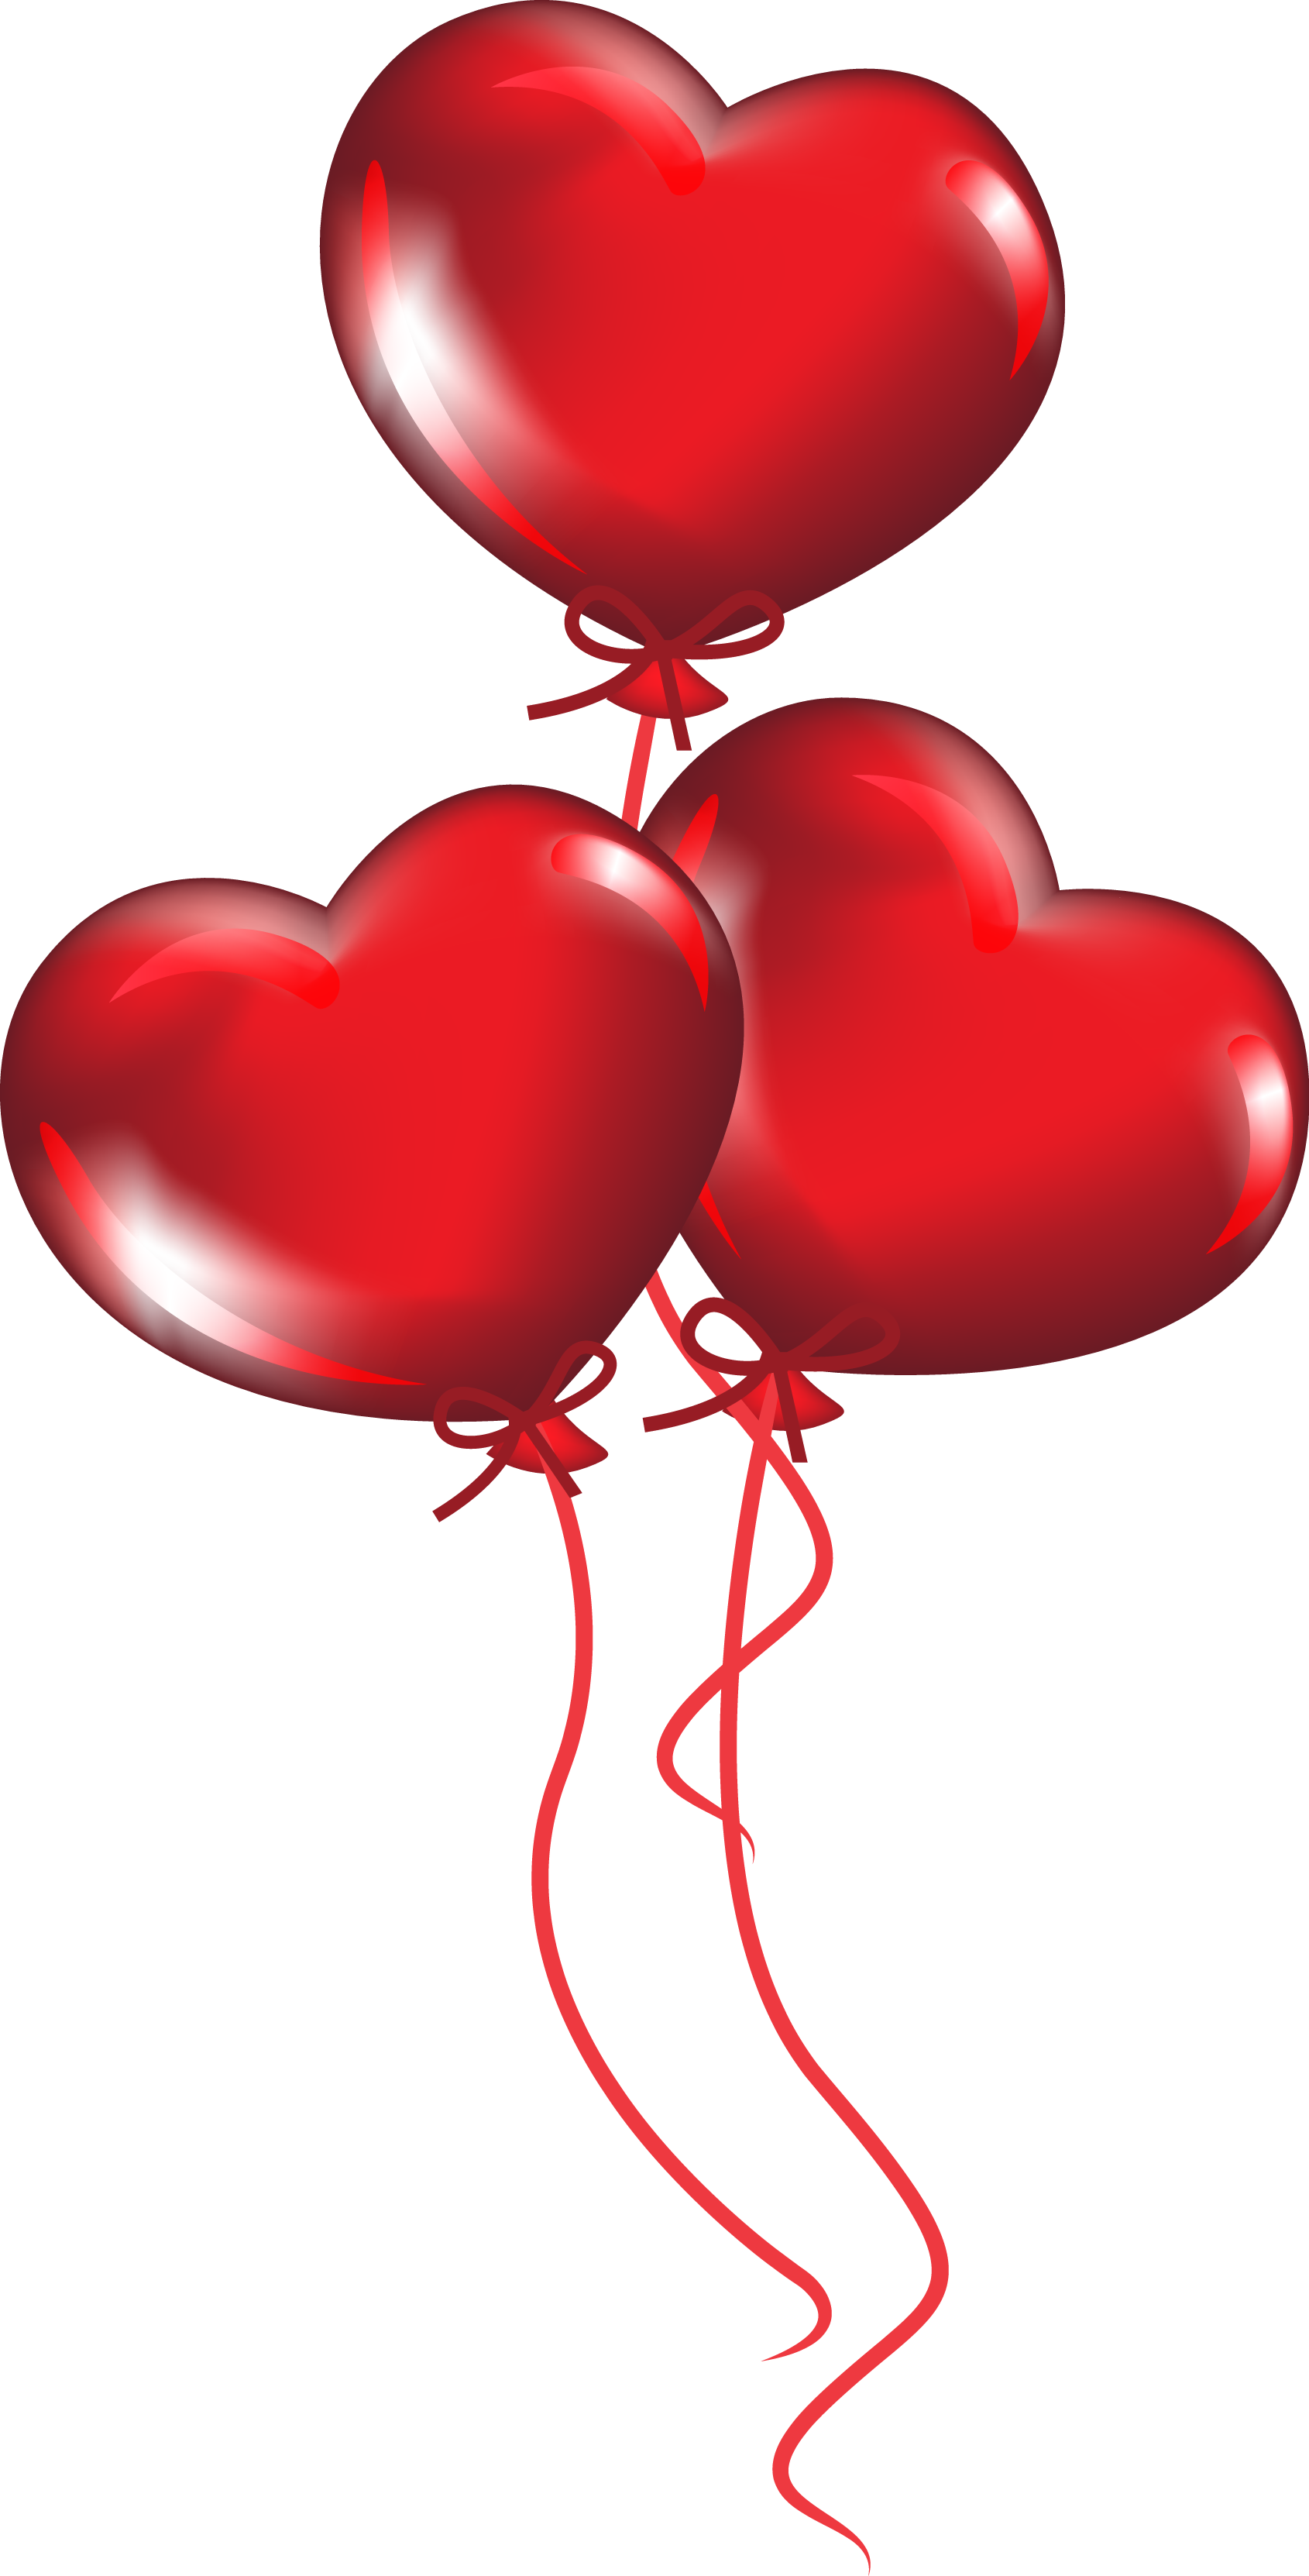 Heart shaped balloons clipart png Heart-shaped balloons Vector material 1690*3325 transprent Png Free ... png